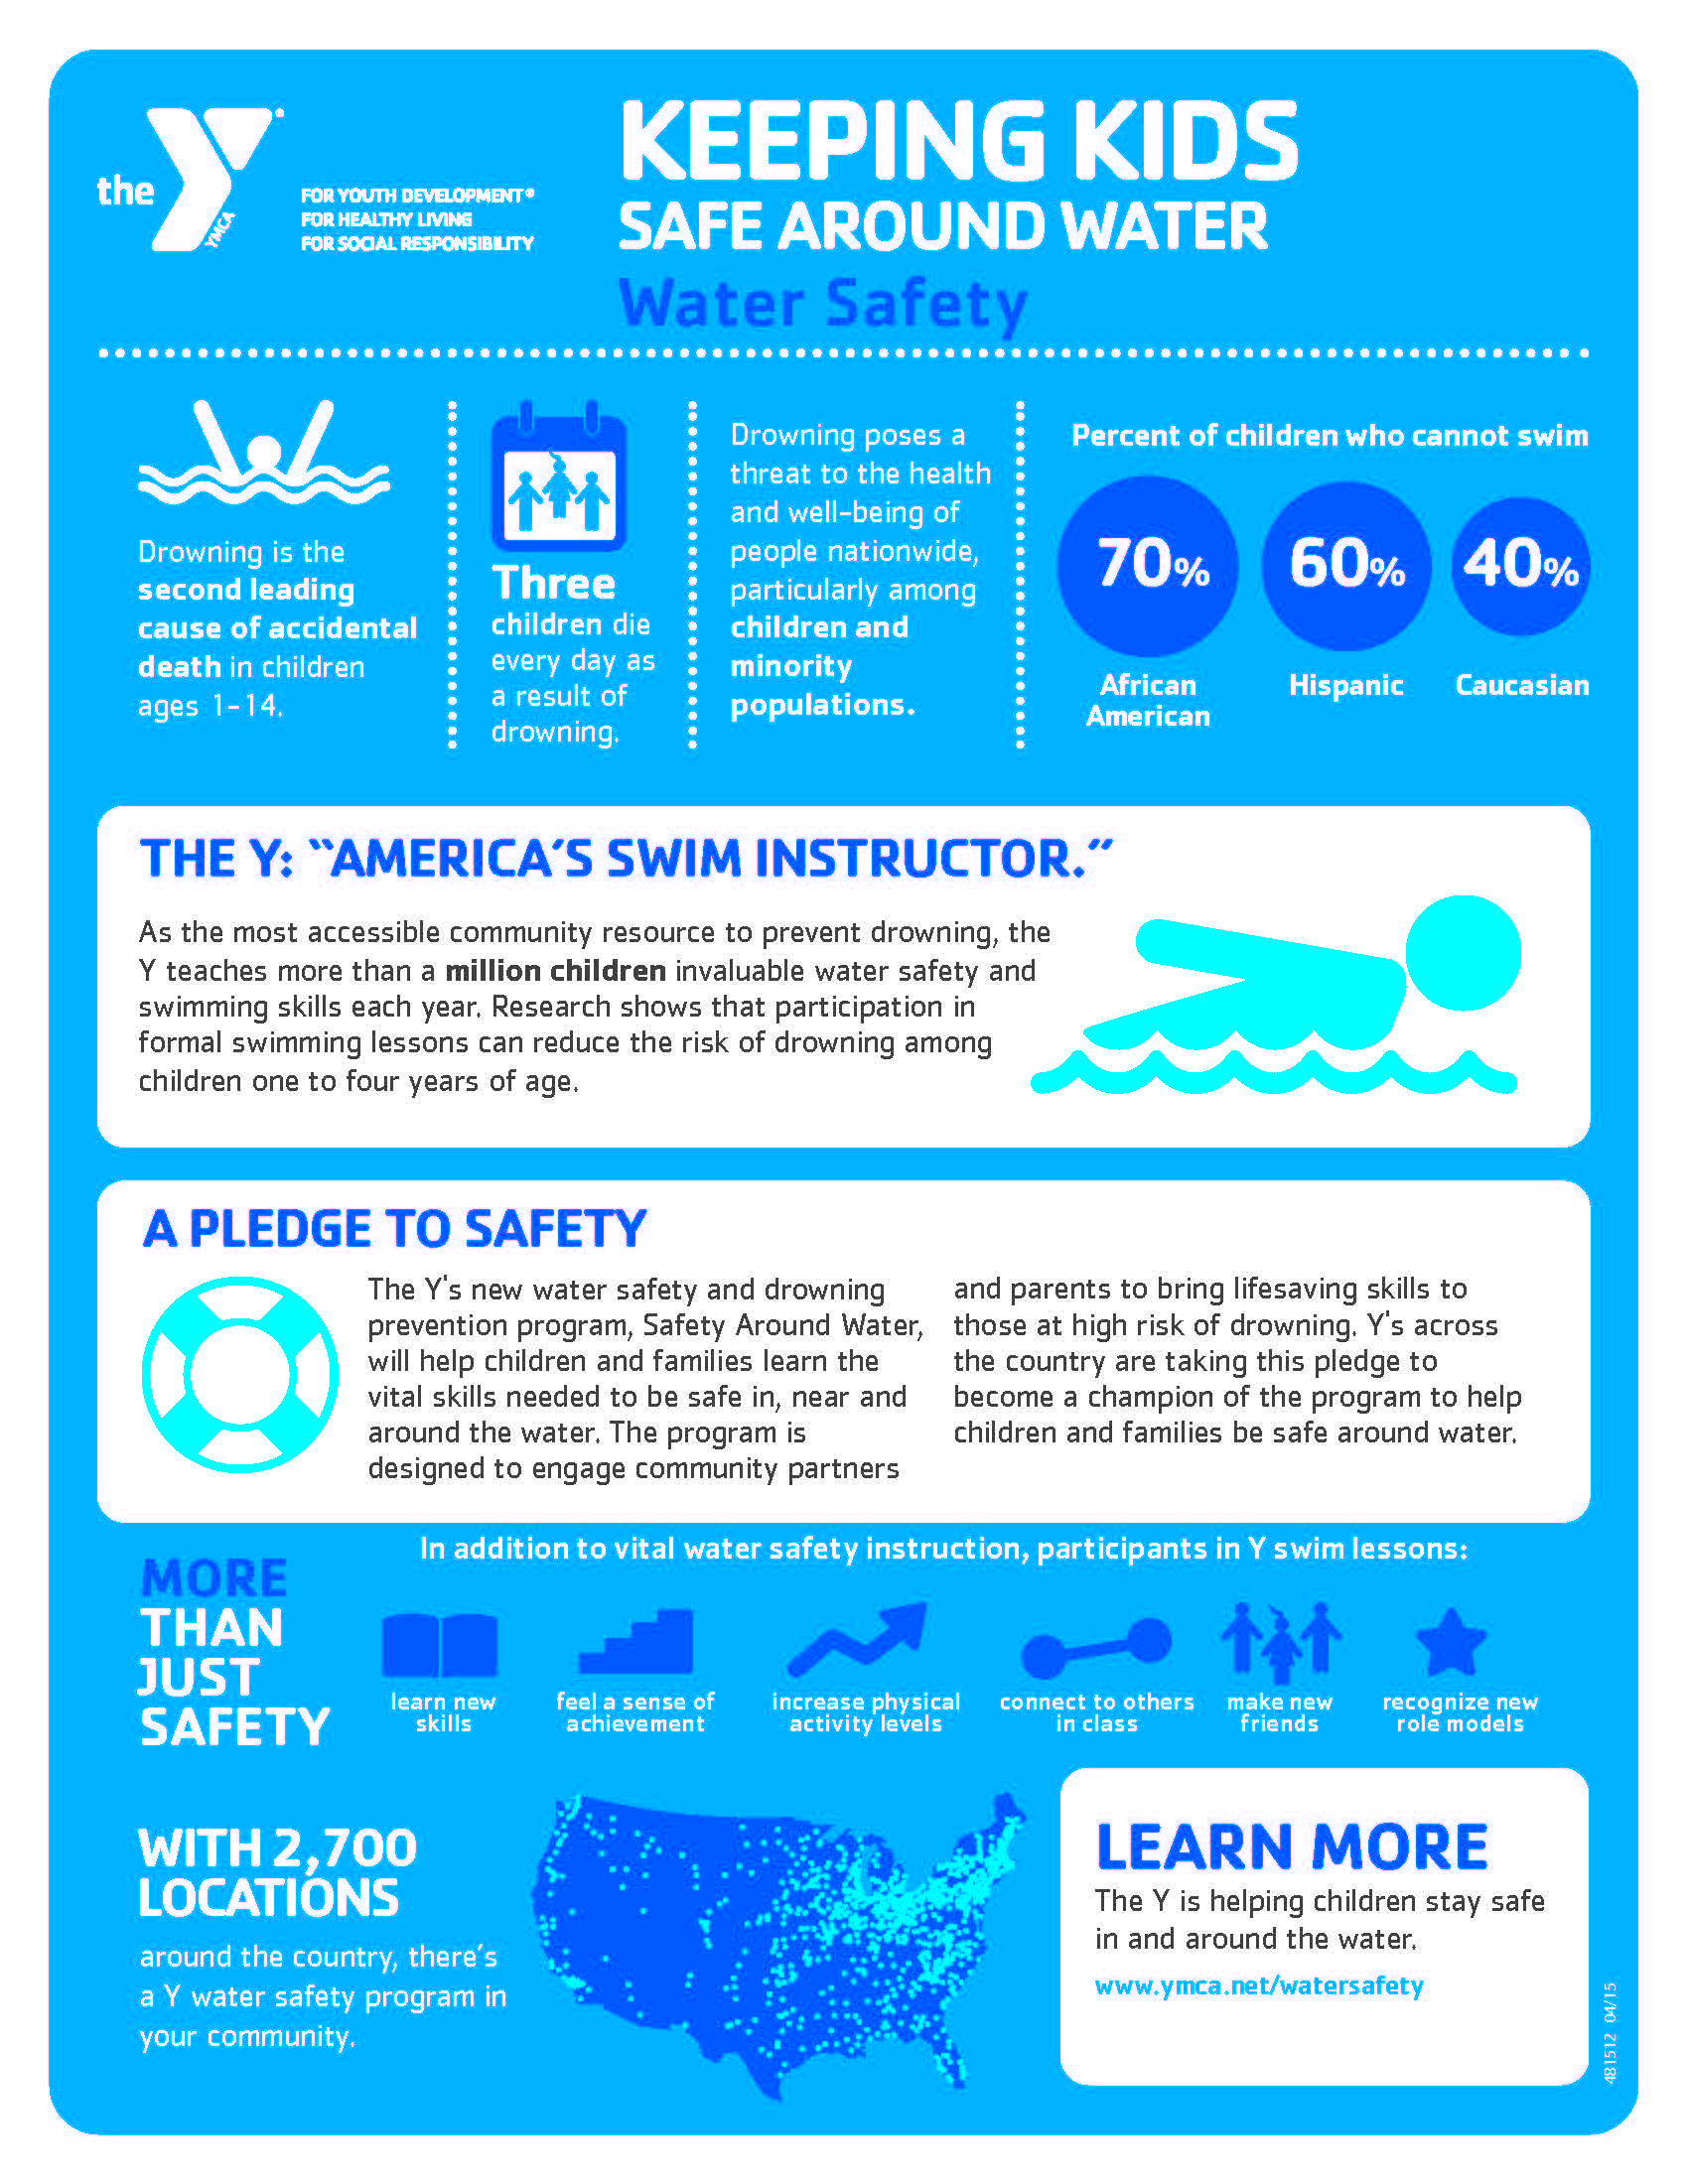 Keeping Kids Safe Around The Water Is One Of Our Most